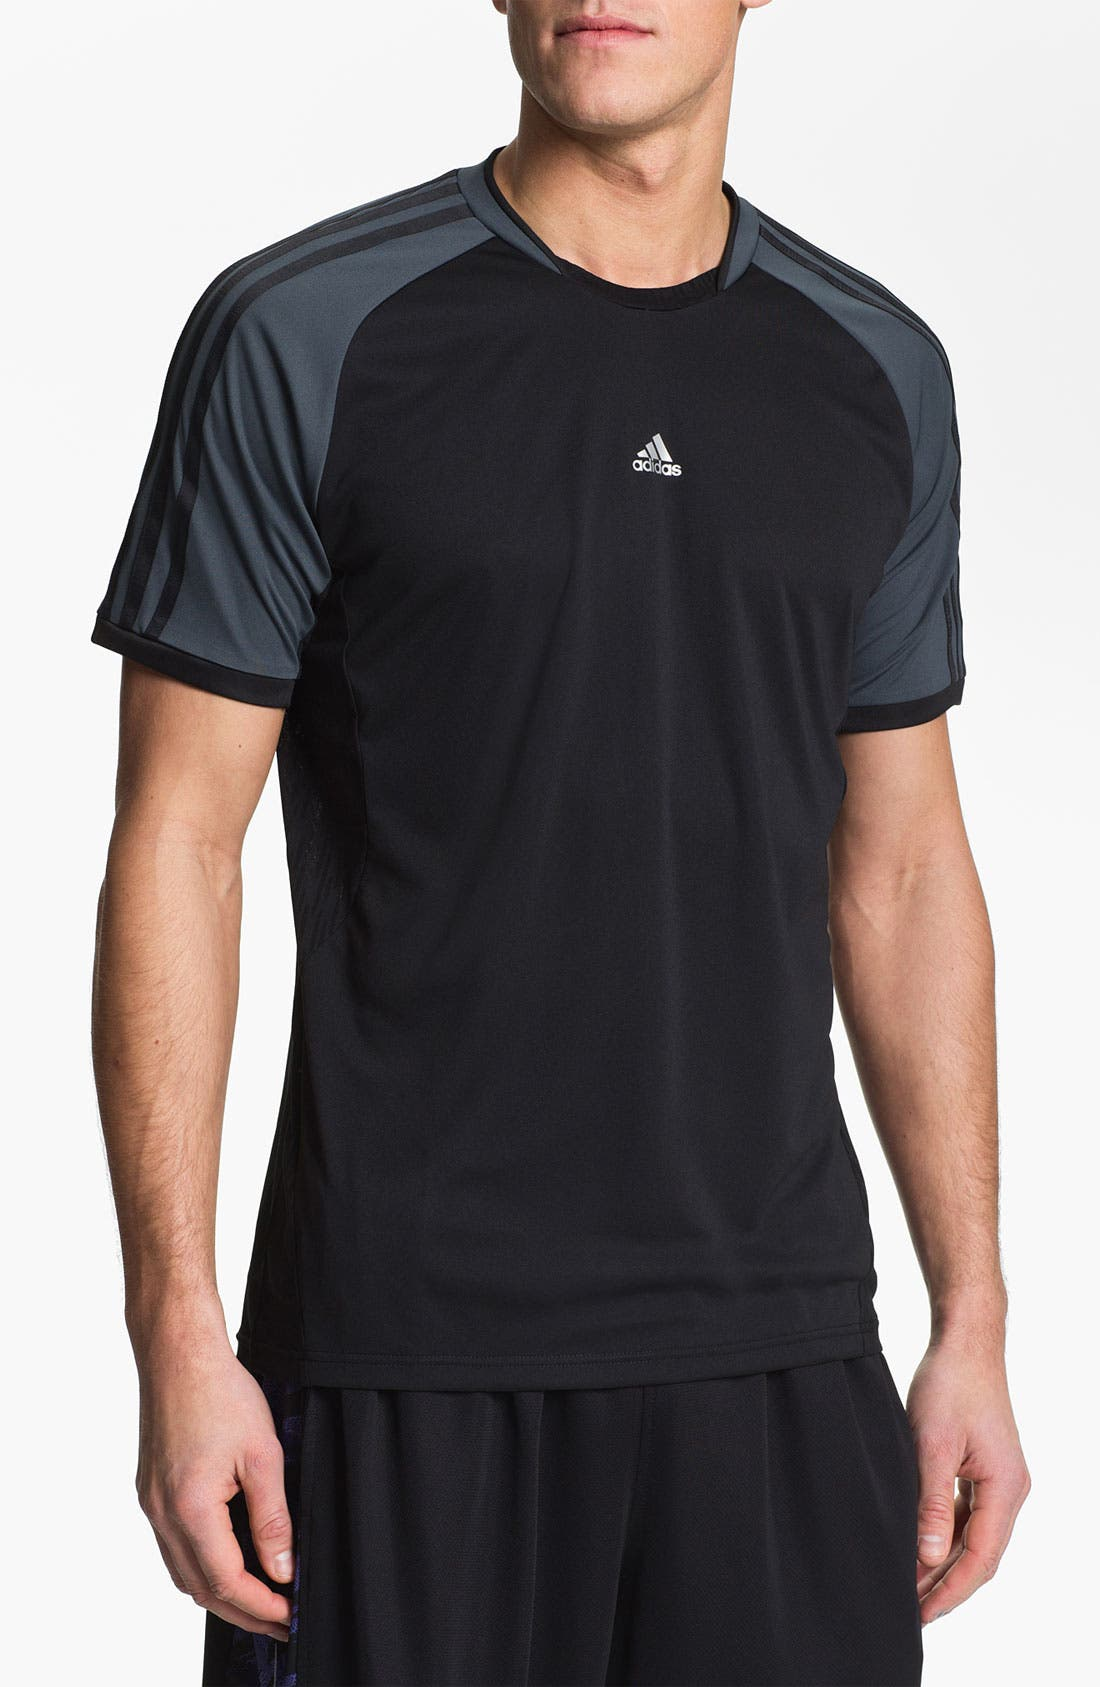 '365 Core' CLIMACOOL<sup>®</sup> T-Shirt,                             Main thumbnail 1, color,                             001